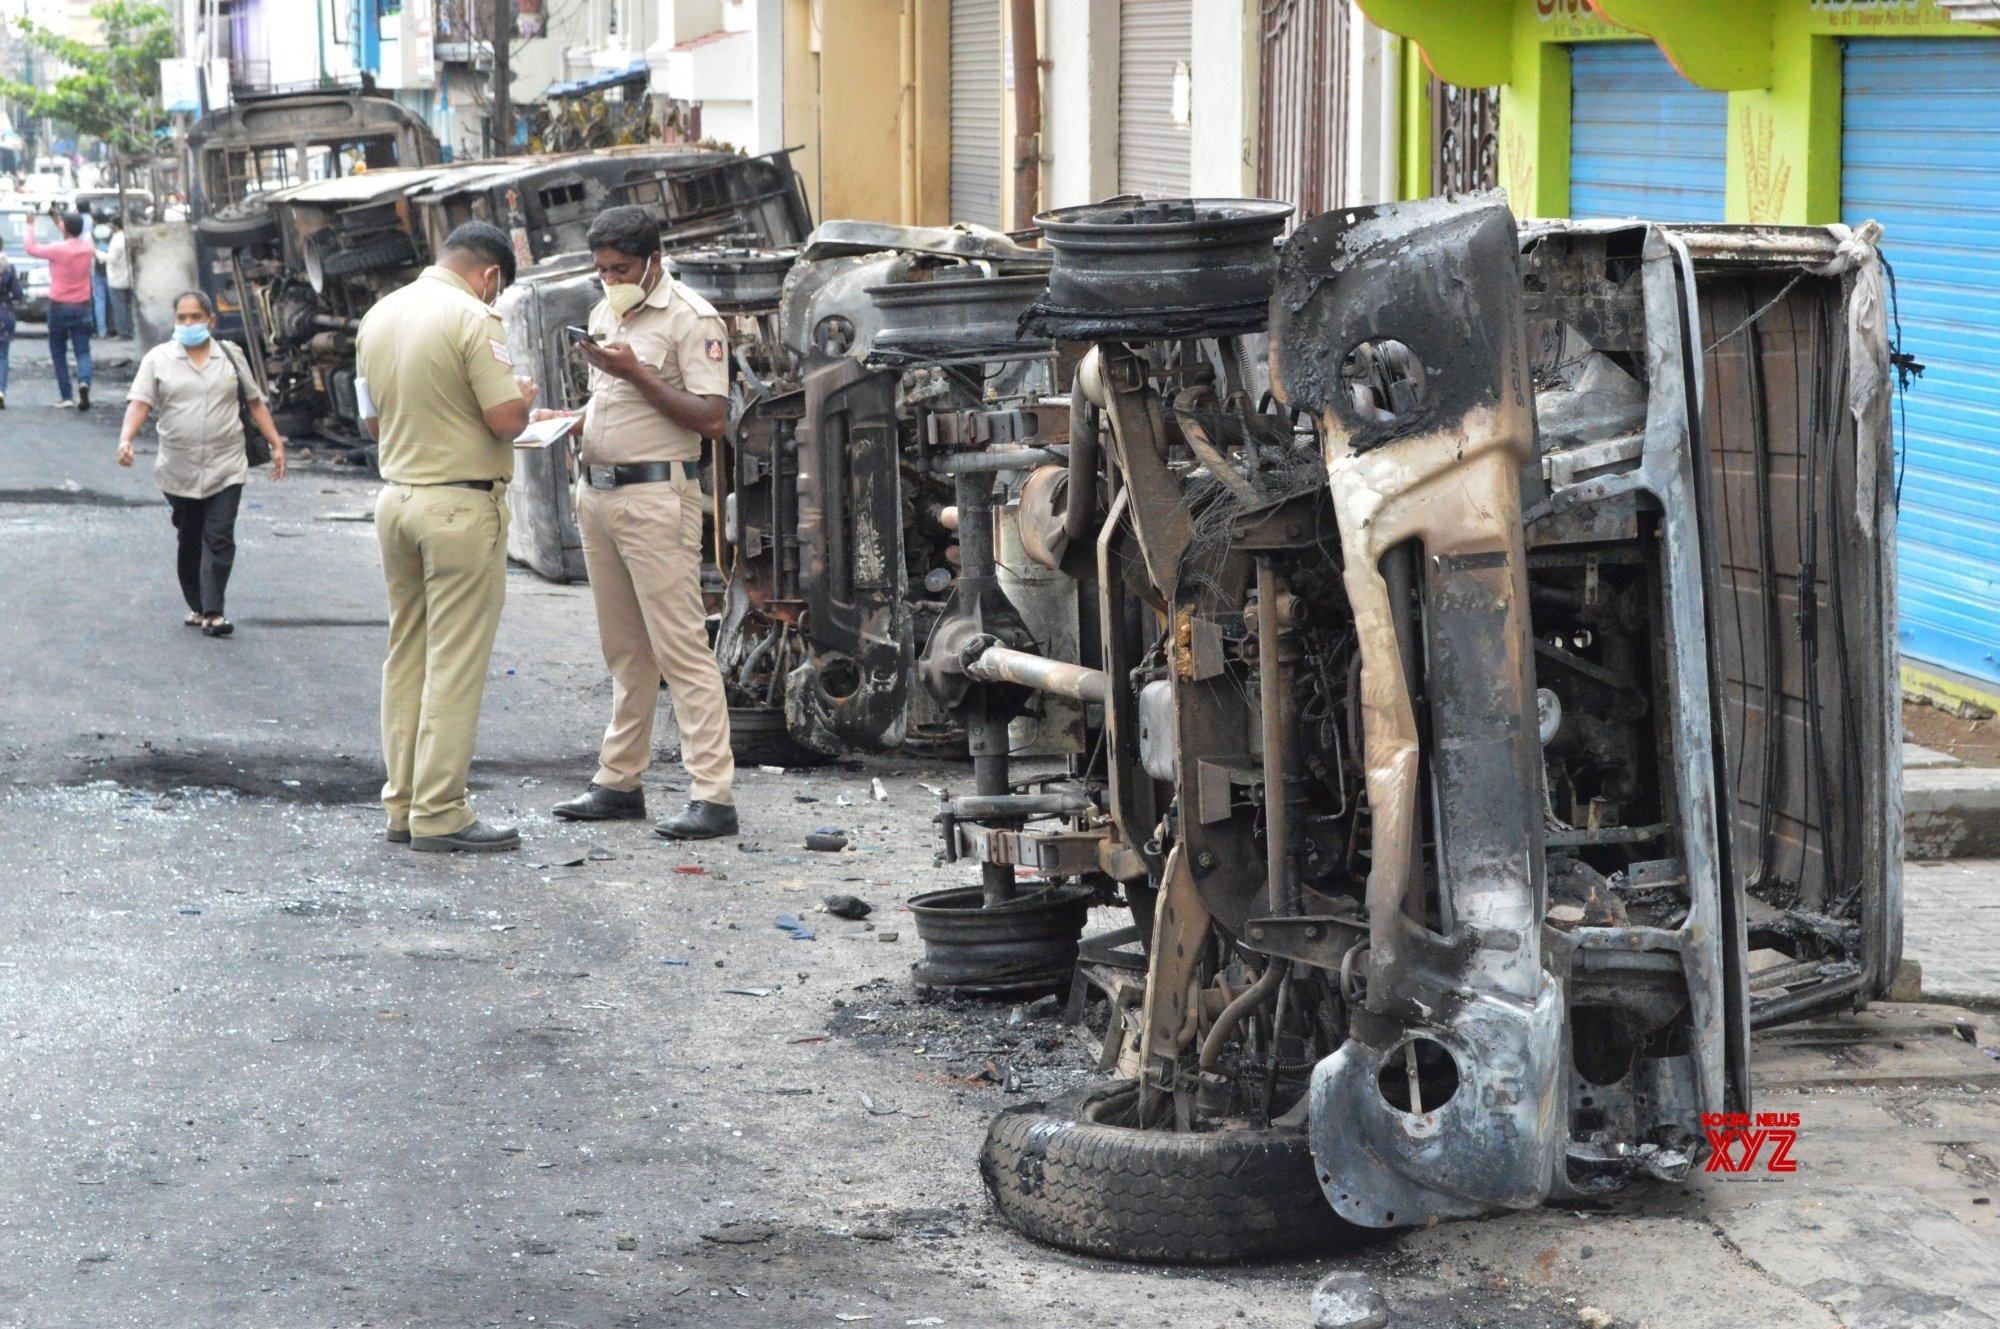 Bengaluru: 3 dead in B'luru, 100 arrested for rioting over FB post #Gallery